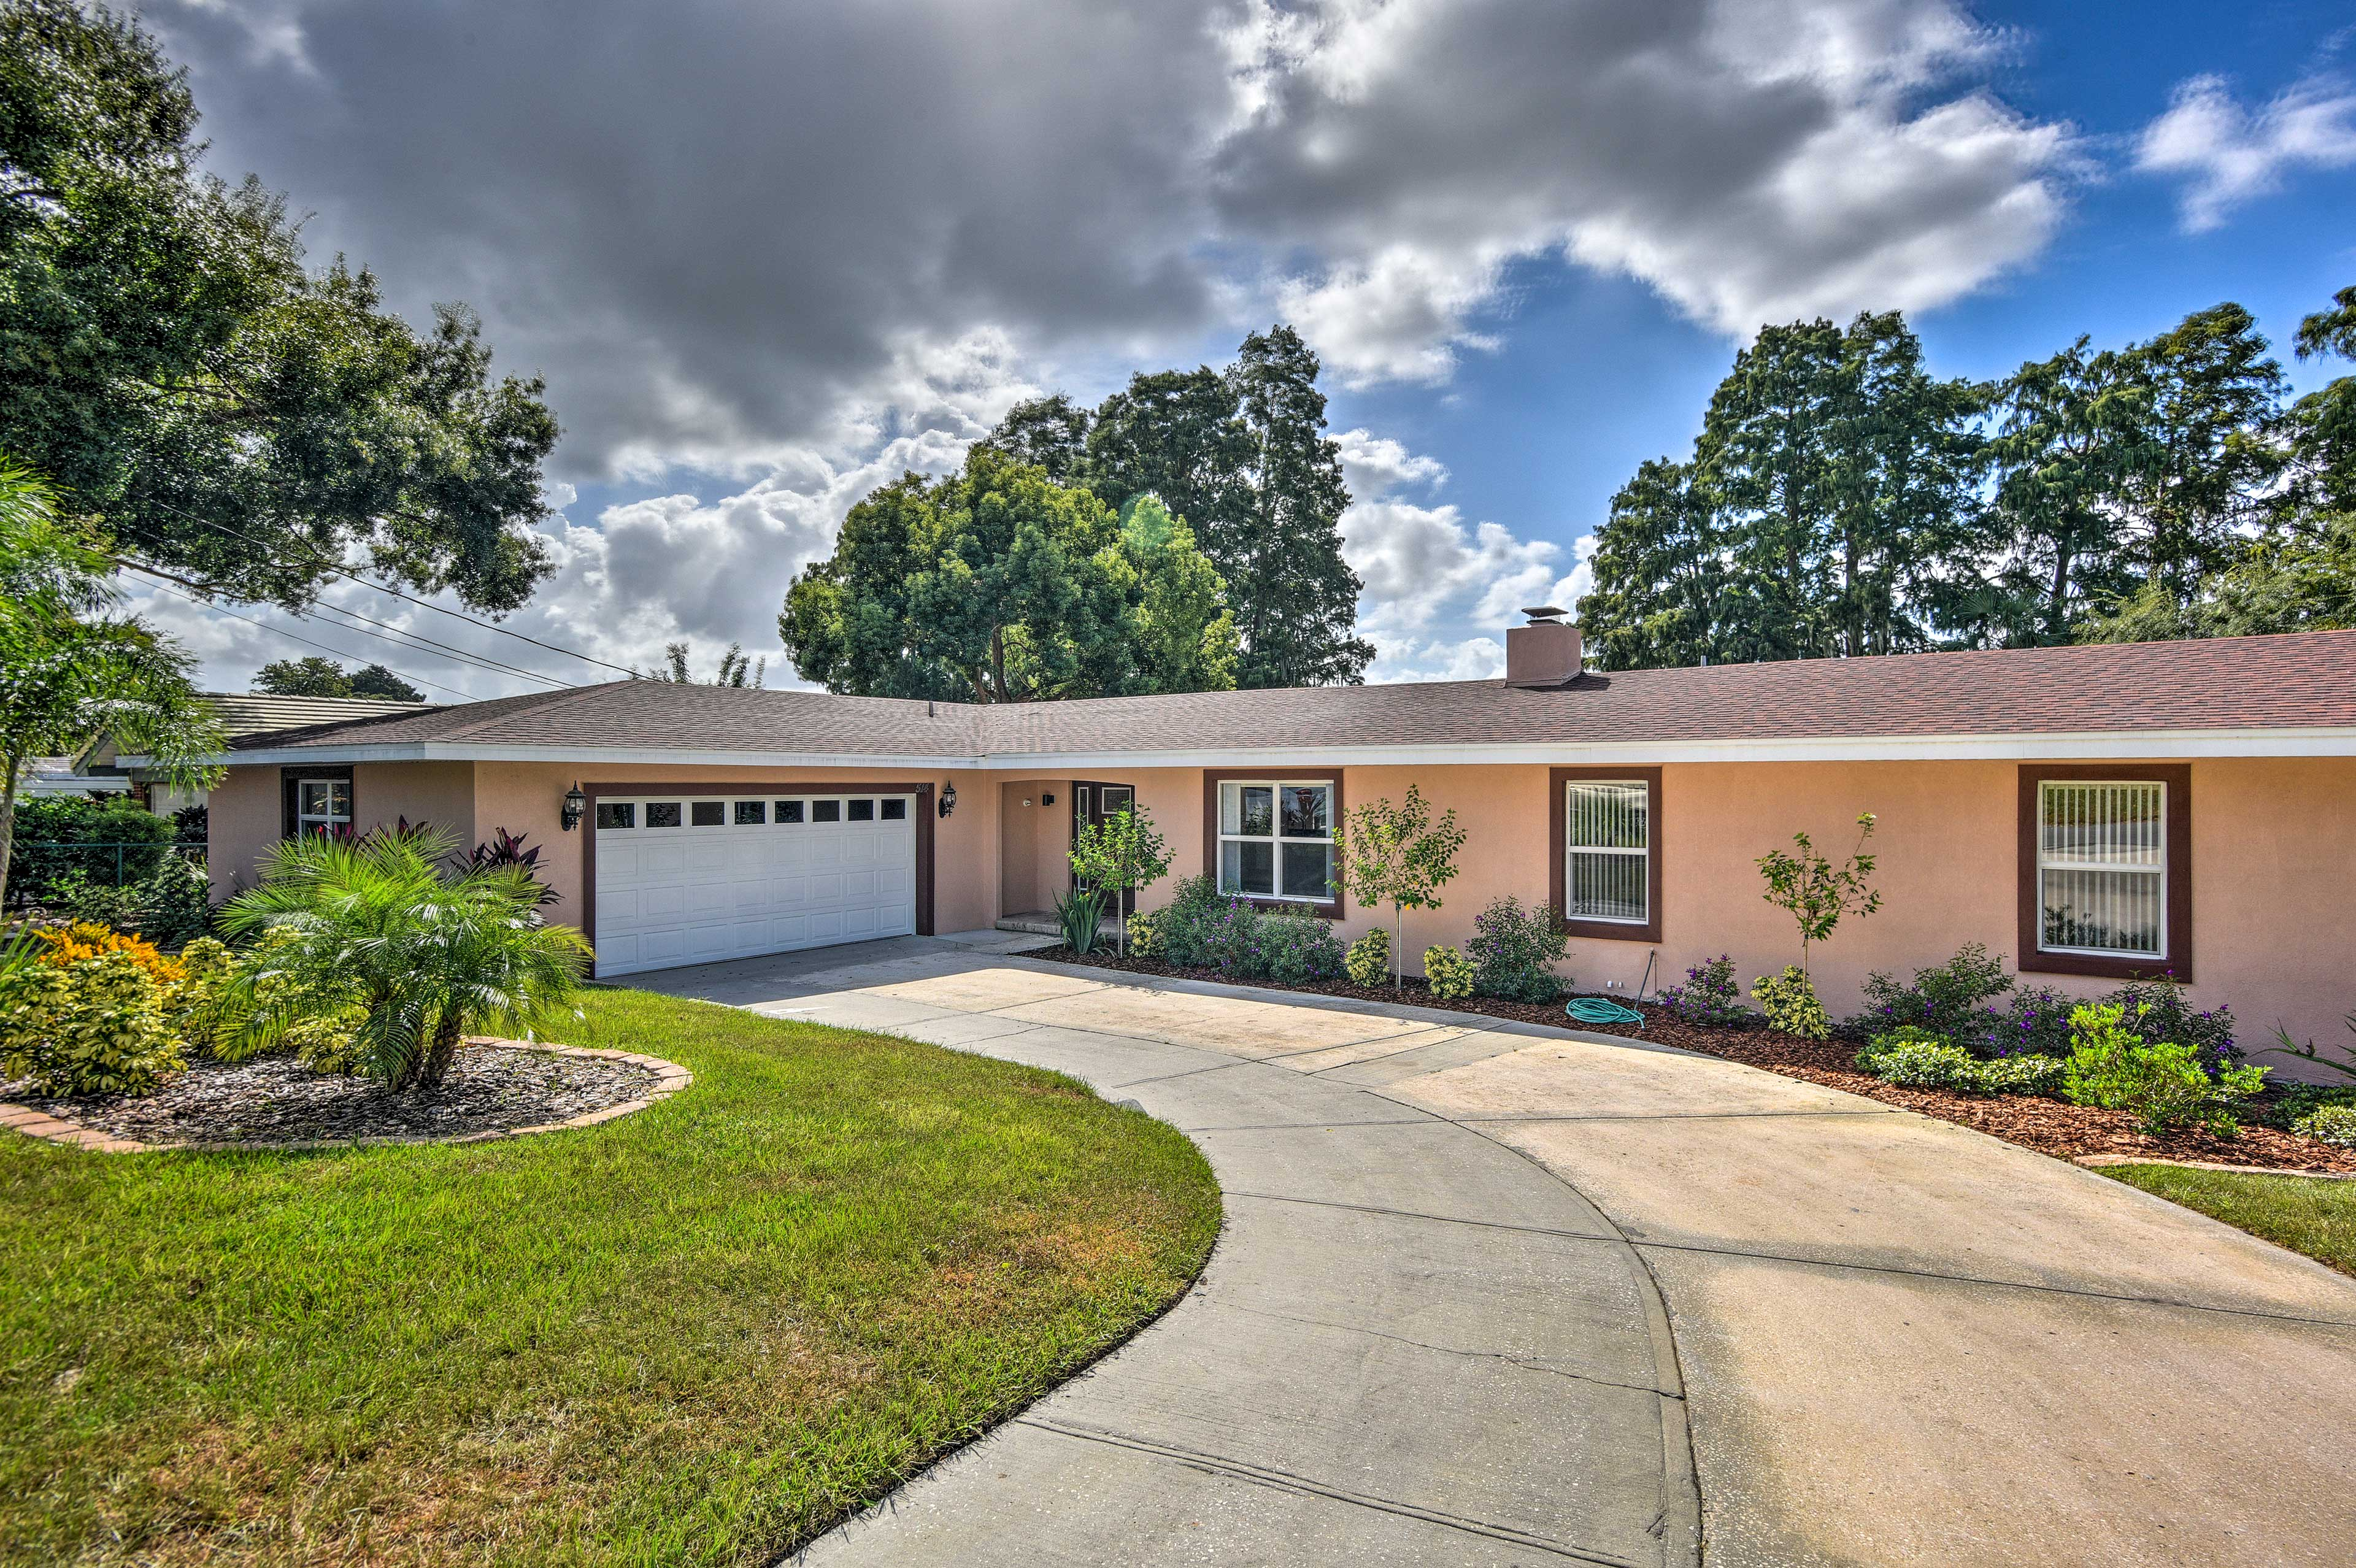 With 4 bedrooms and 3 bathrooms, this Florida home can sleep 12 guests!